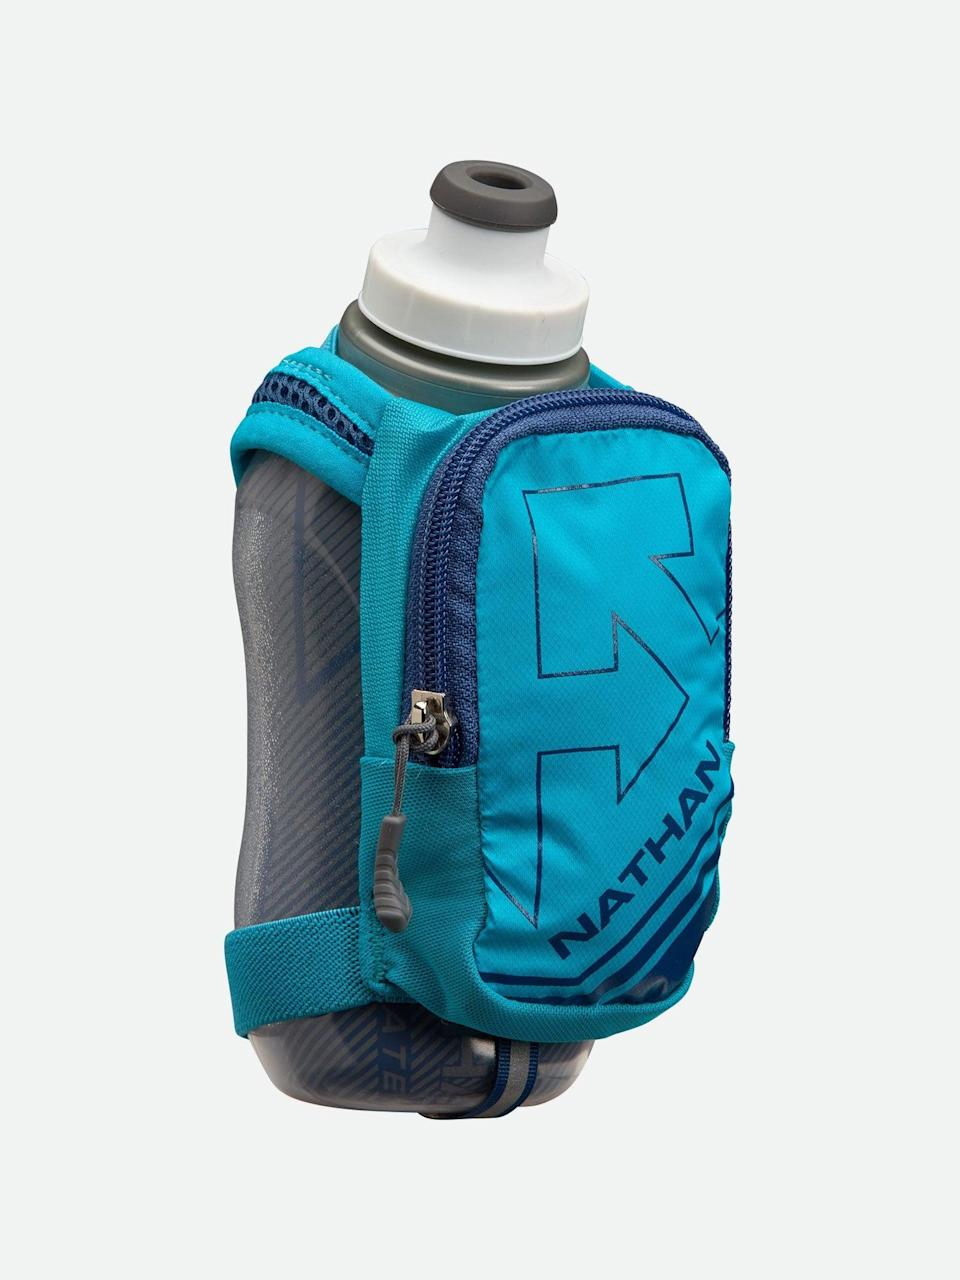 """<h3>Nathan Sports SpeedShot Plus Insulated Flask</h3><br>""""Honestly, I used to get my mid-run water from the public water fountains in my local park. The pandemic made that seem like a bad idea. Luckily, I had this <a href=""""https://www.refinery29.com/en-us/best-reusable-water-bottle"""" rel=""""nofollow noopener"""" target=""""_blank"""" data-ylk=""""slk:water bottle"""" class=""""link rapid-noclick-resp"""">water bottle</a>. The strap grips my hand so I don't have to hold onto it — I can forget it's there until I need a sip. I like that the pouch can hold a key and ID, too."""" <em>— MZ</em><br><br><strong>Nathan Sports</strong> Nathan Sports SpeedShot Plus Insulated Flask, $, available at <a href=""""https://go.skimresources.com/?id=30283X879131&url=https%3A%2F%2Fwww.nathansports.com%2Fproducts%2Fspeedshot-plus-insulated-flask-bluebird-true-navy"""" rel=""""nofollow noopener"""" target=""""_blank"""" data-ylk=""""slk:Nathan Sports"""" class=""""link rapid-noclick-resp"""">Nathan Sports</a>"""